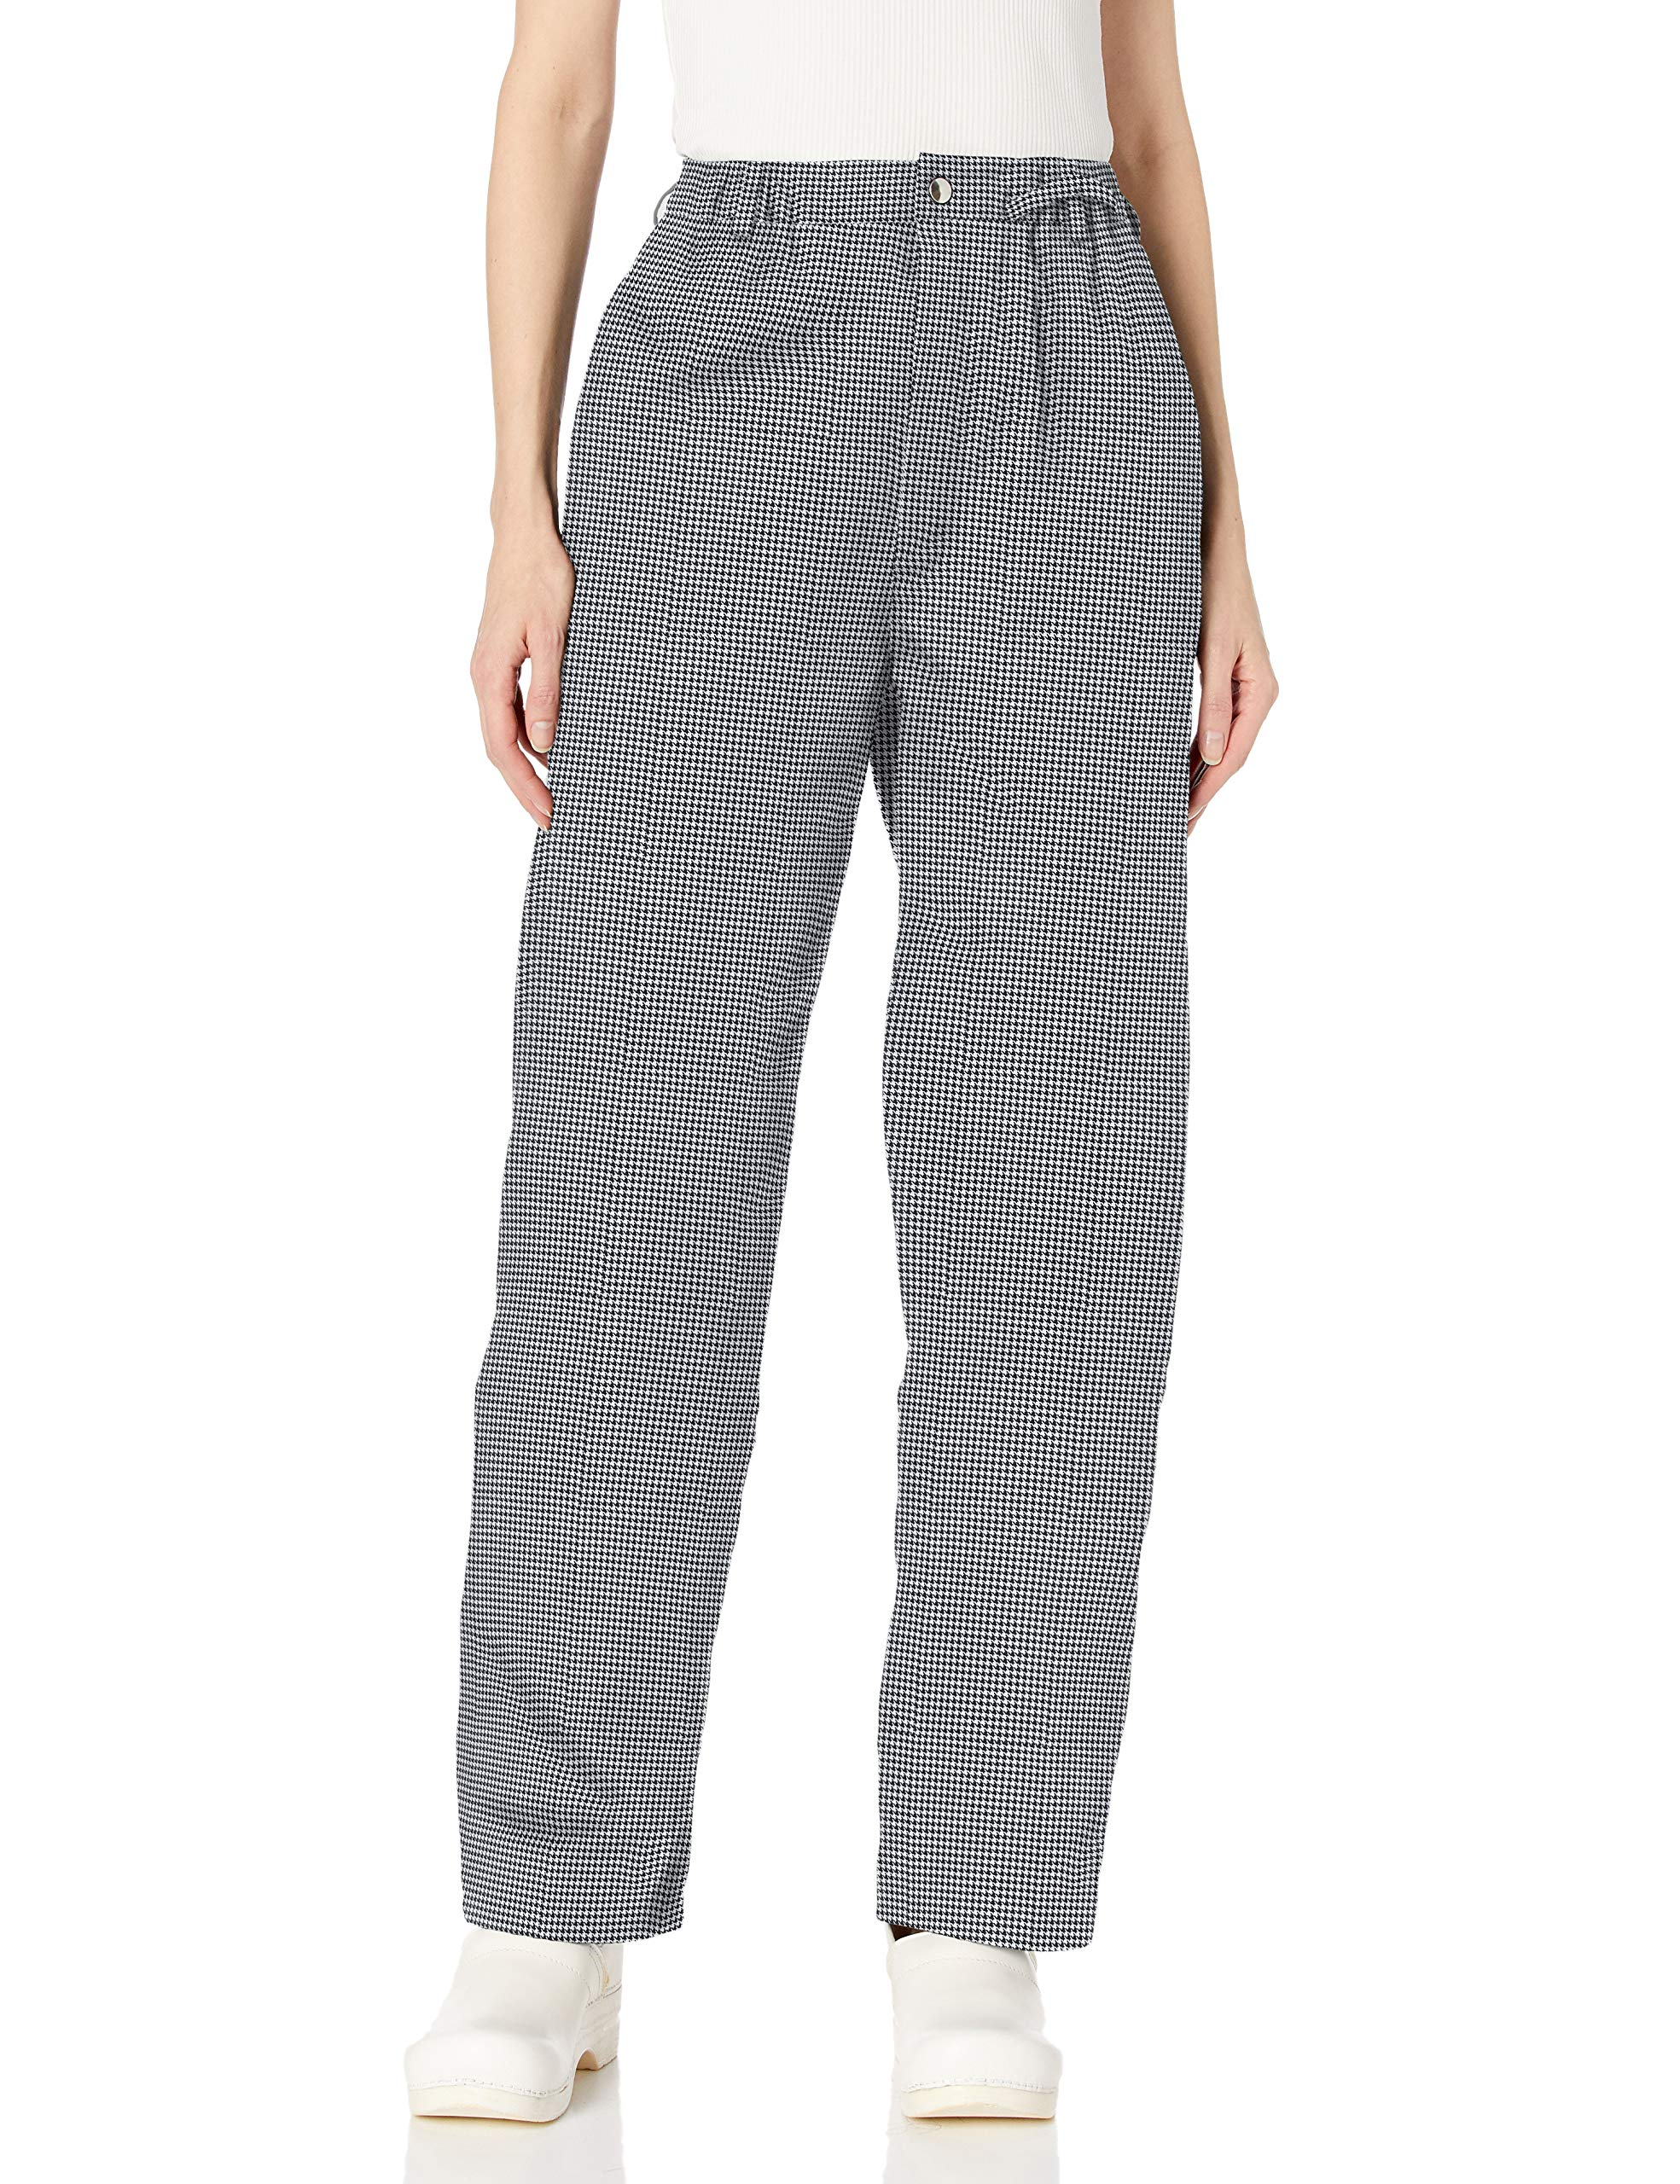 Uncommon Threads Women's Executive Chef Pant